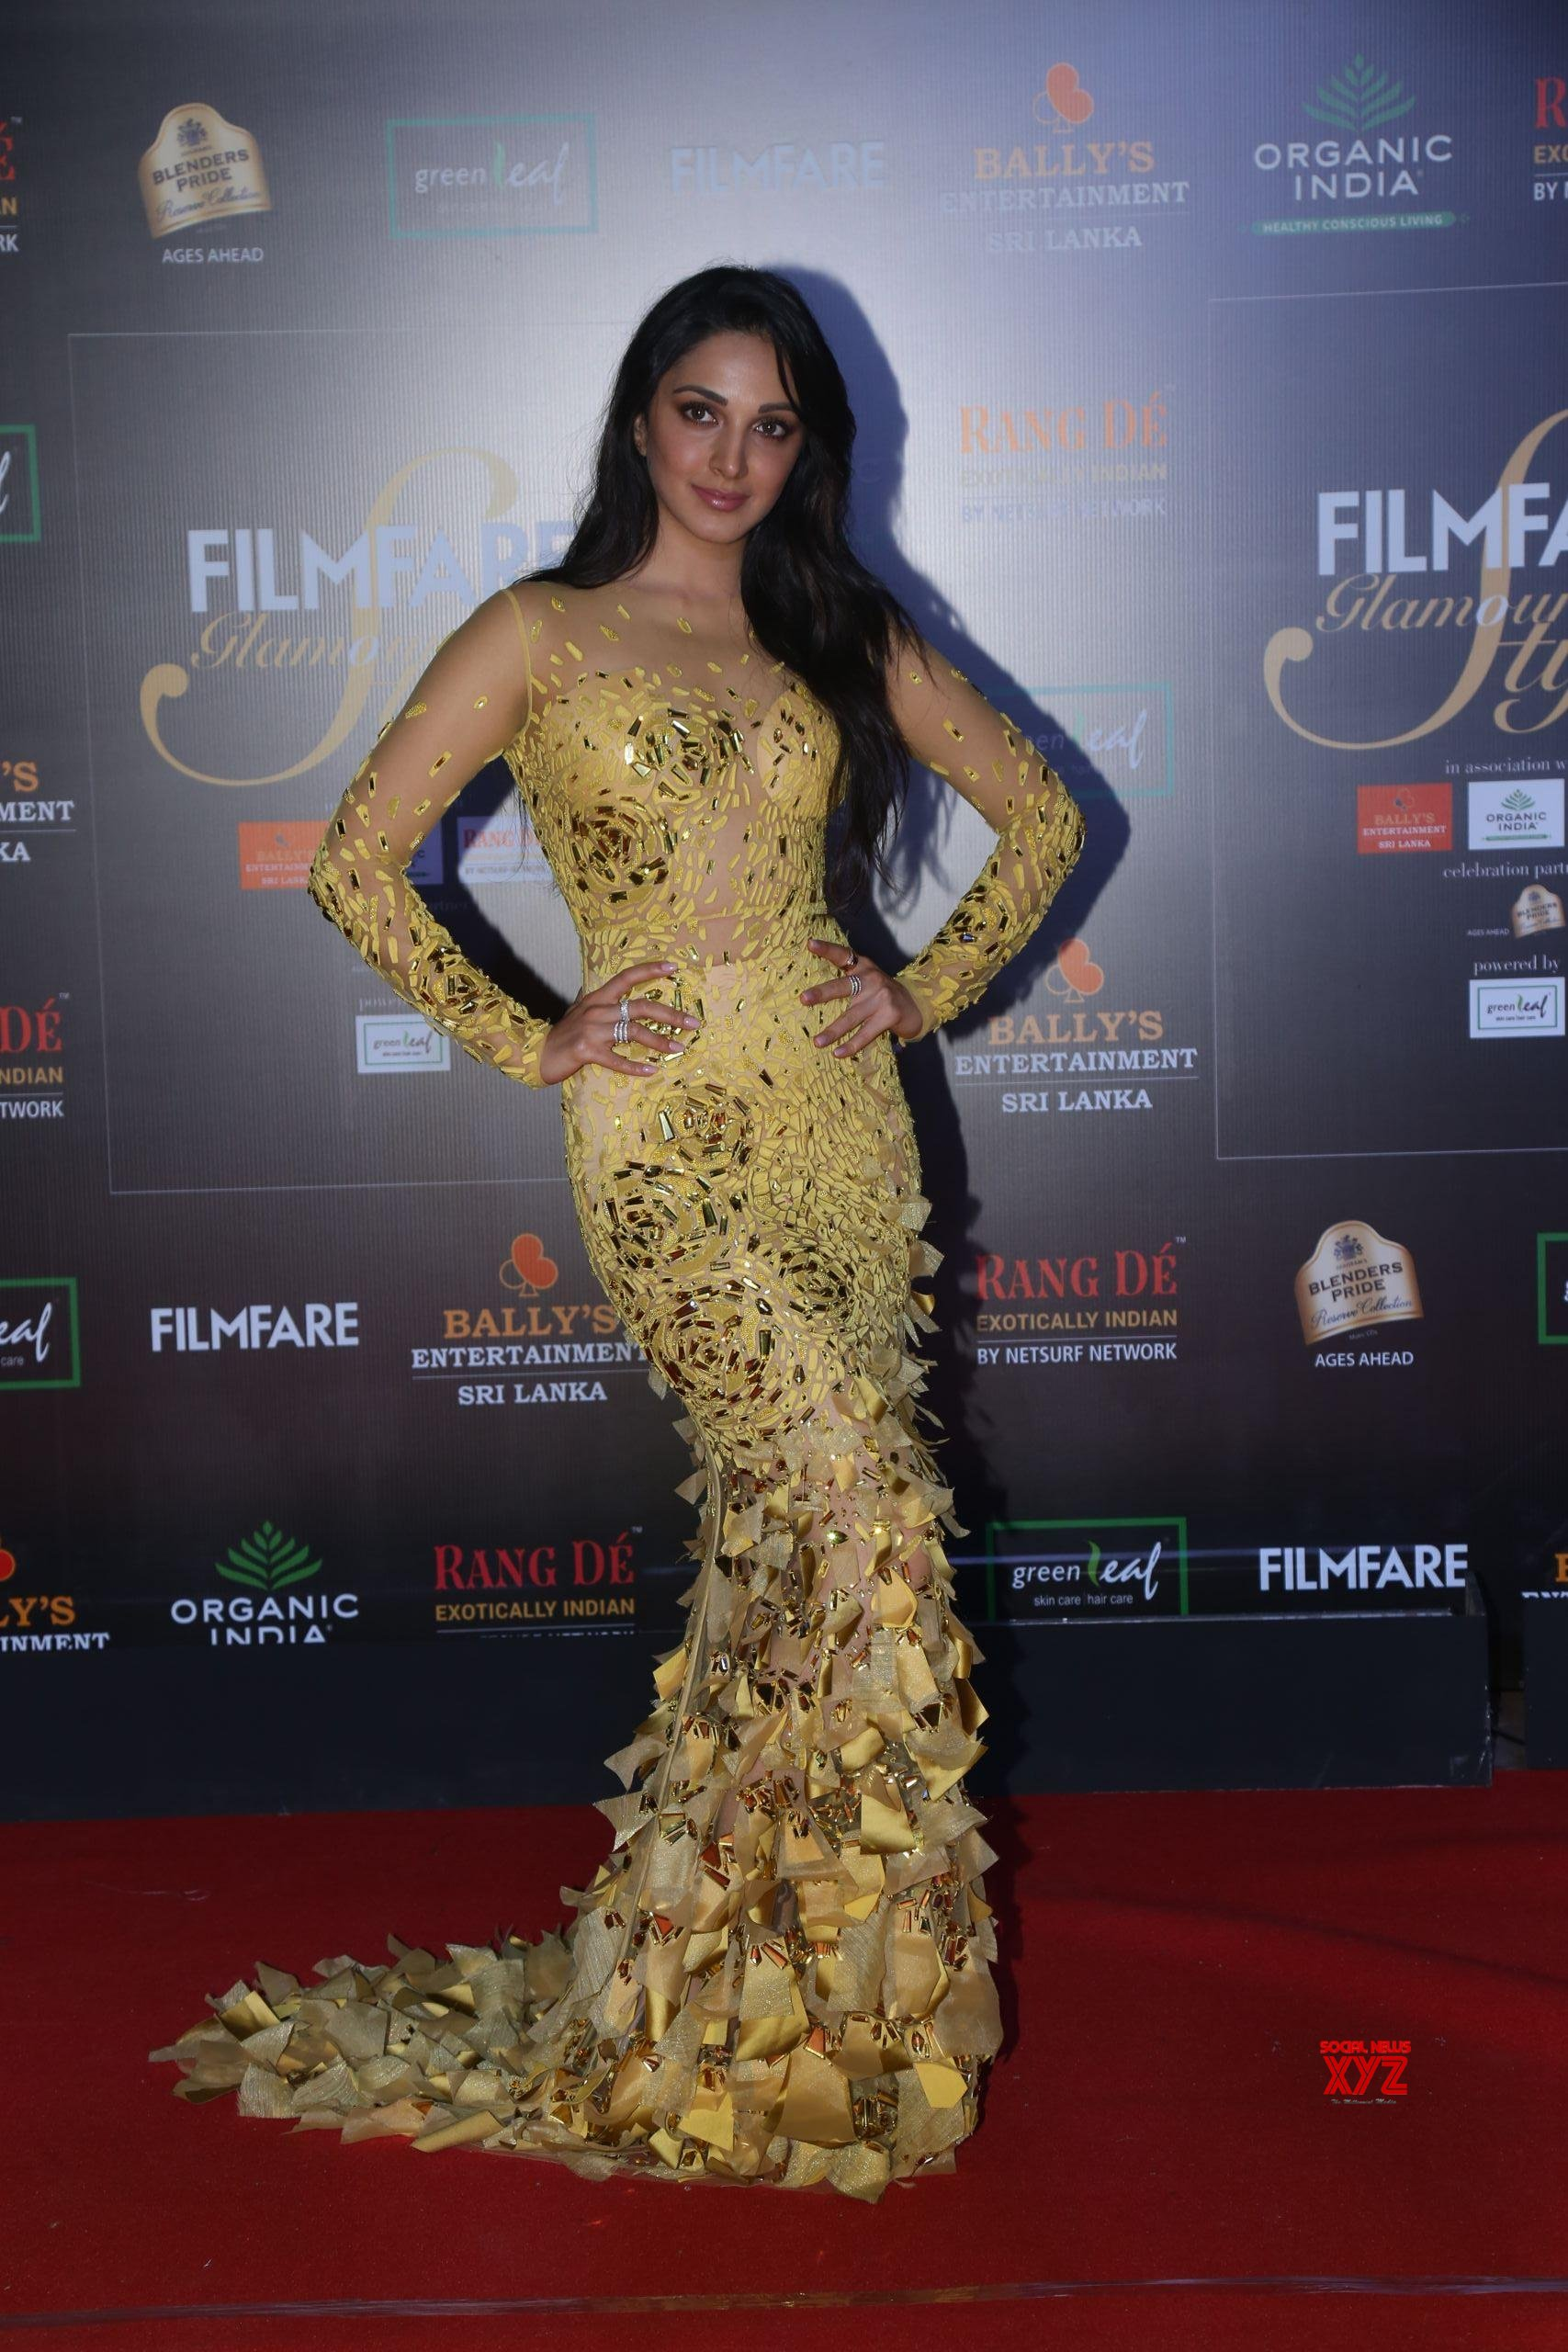 Celebs At Filmfare Glamour And Style Awards 2019 Red Carpet At Taj Lands End In Bandra HD Gallery Set 1